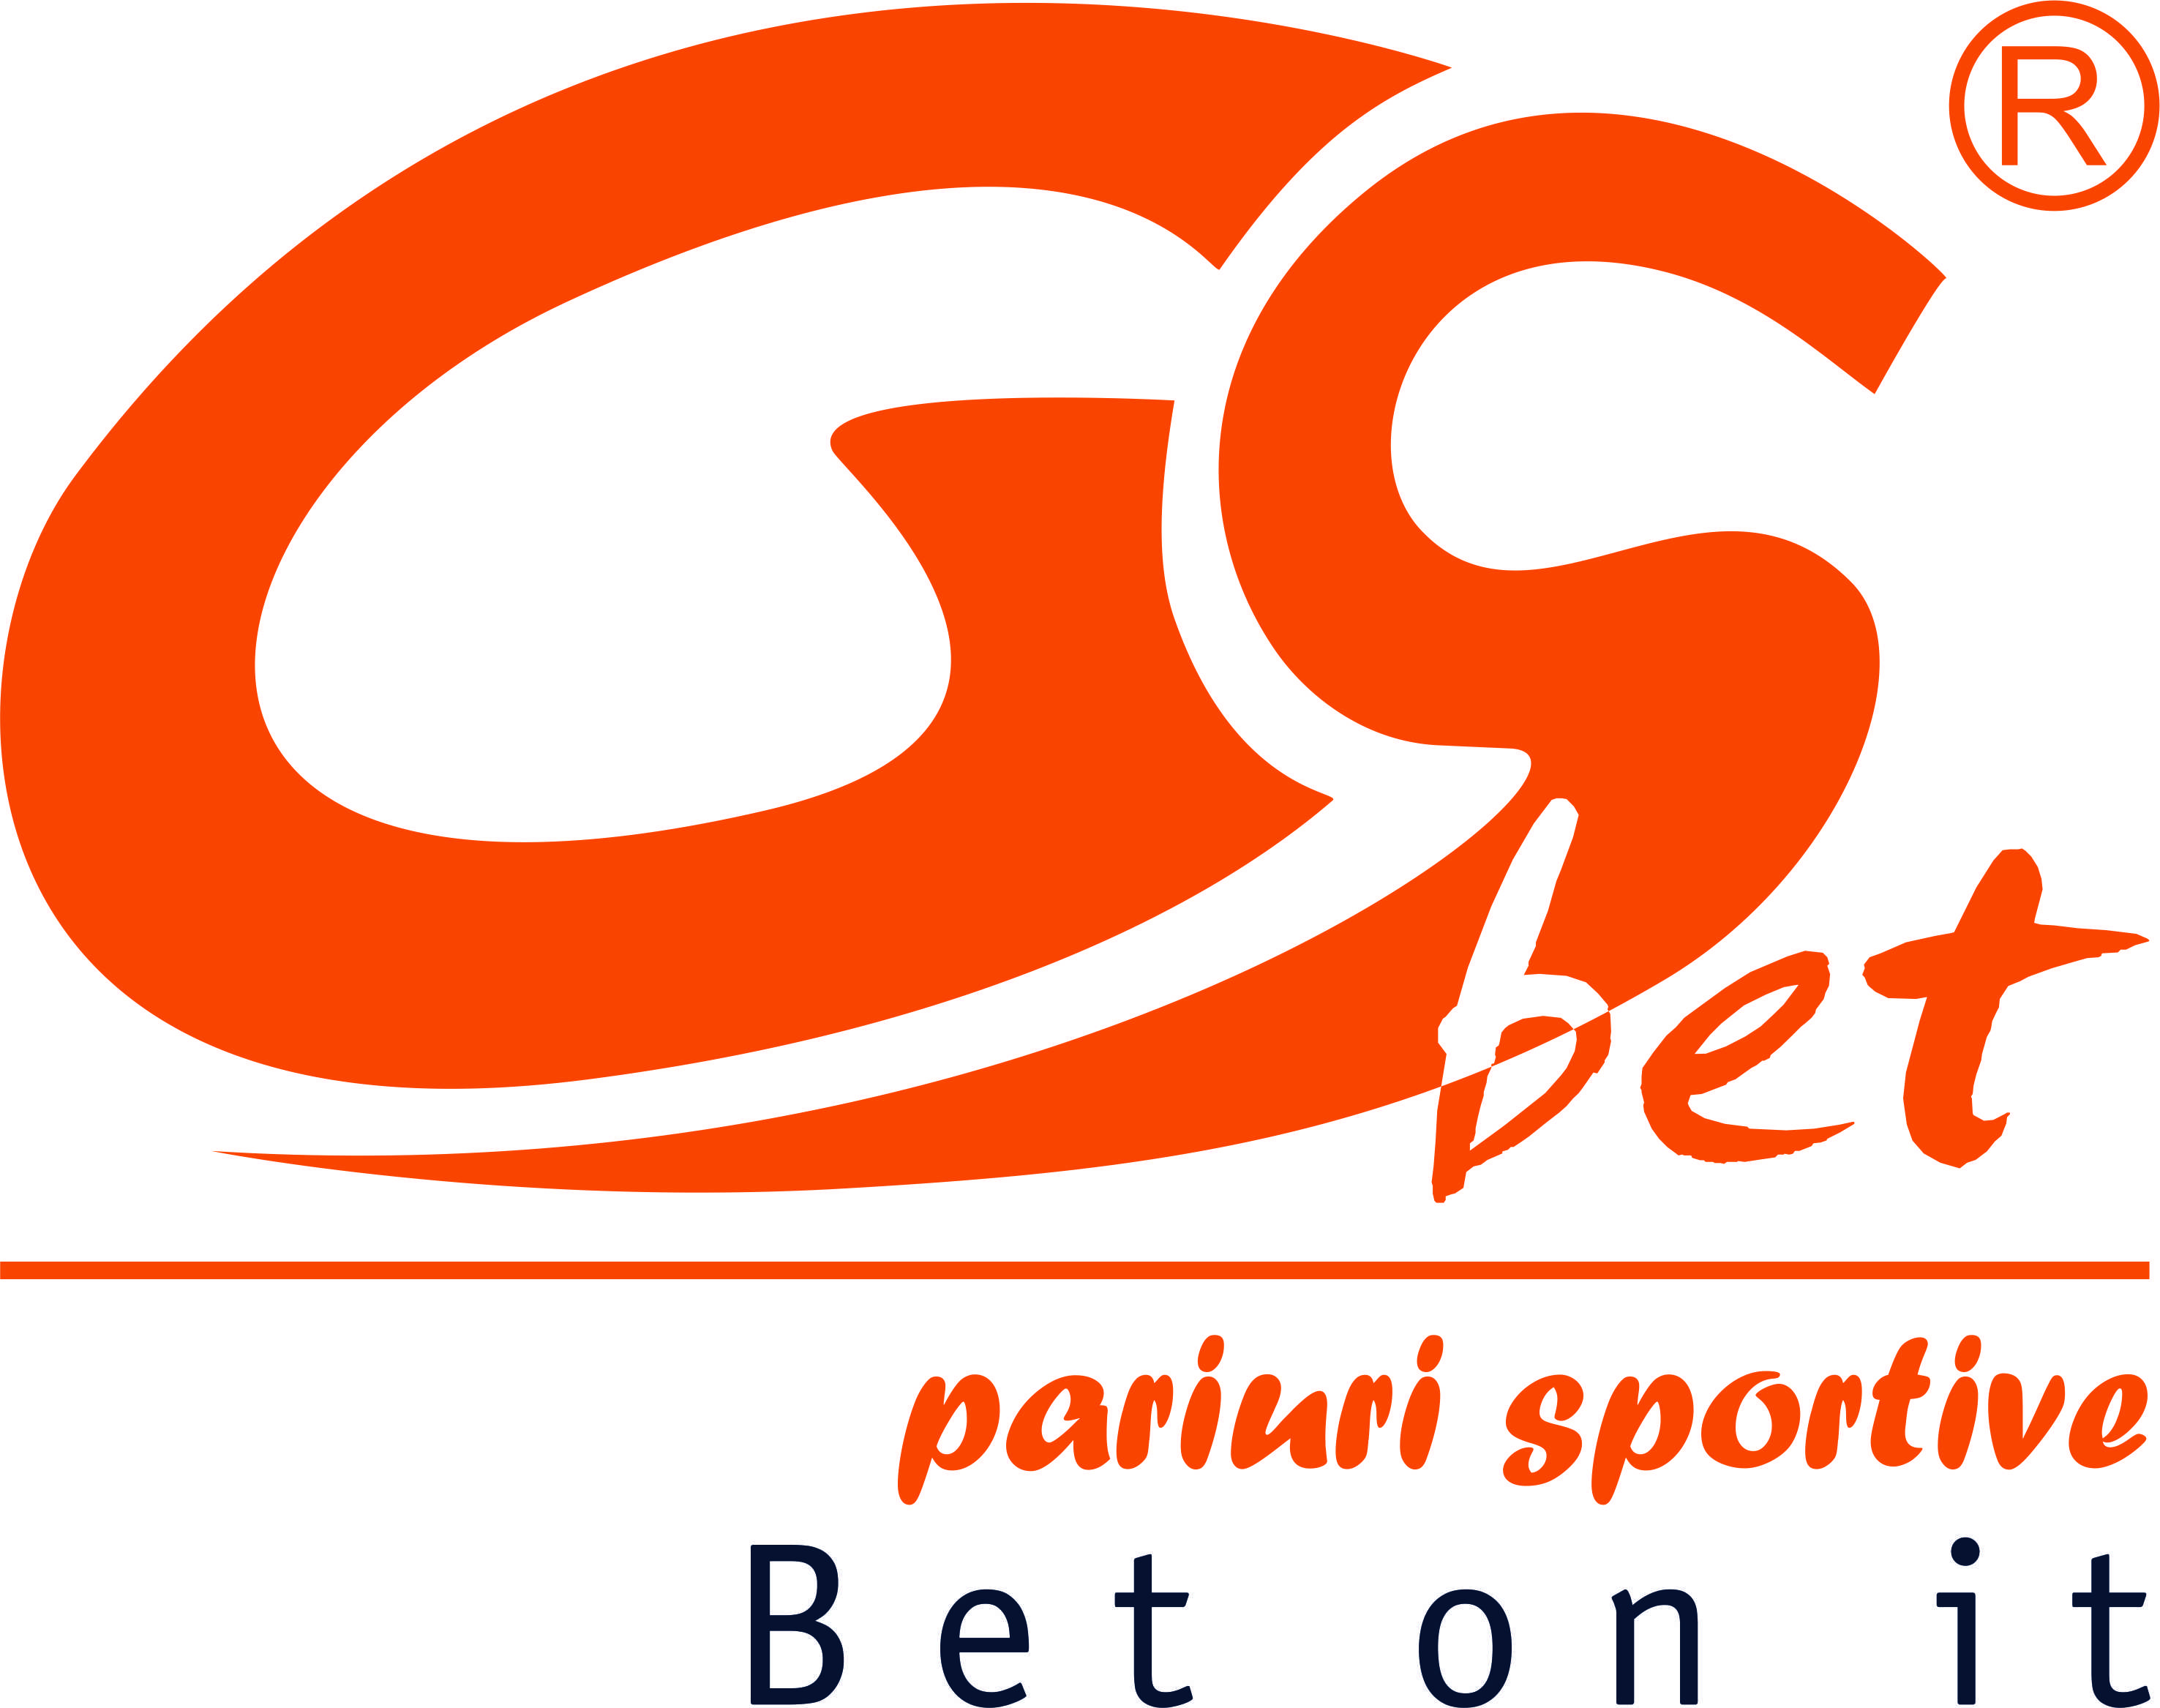 Casa de pariuri gs betting sports betting professor results www